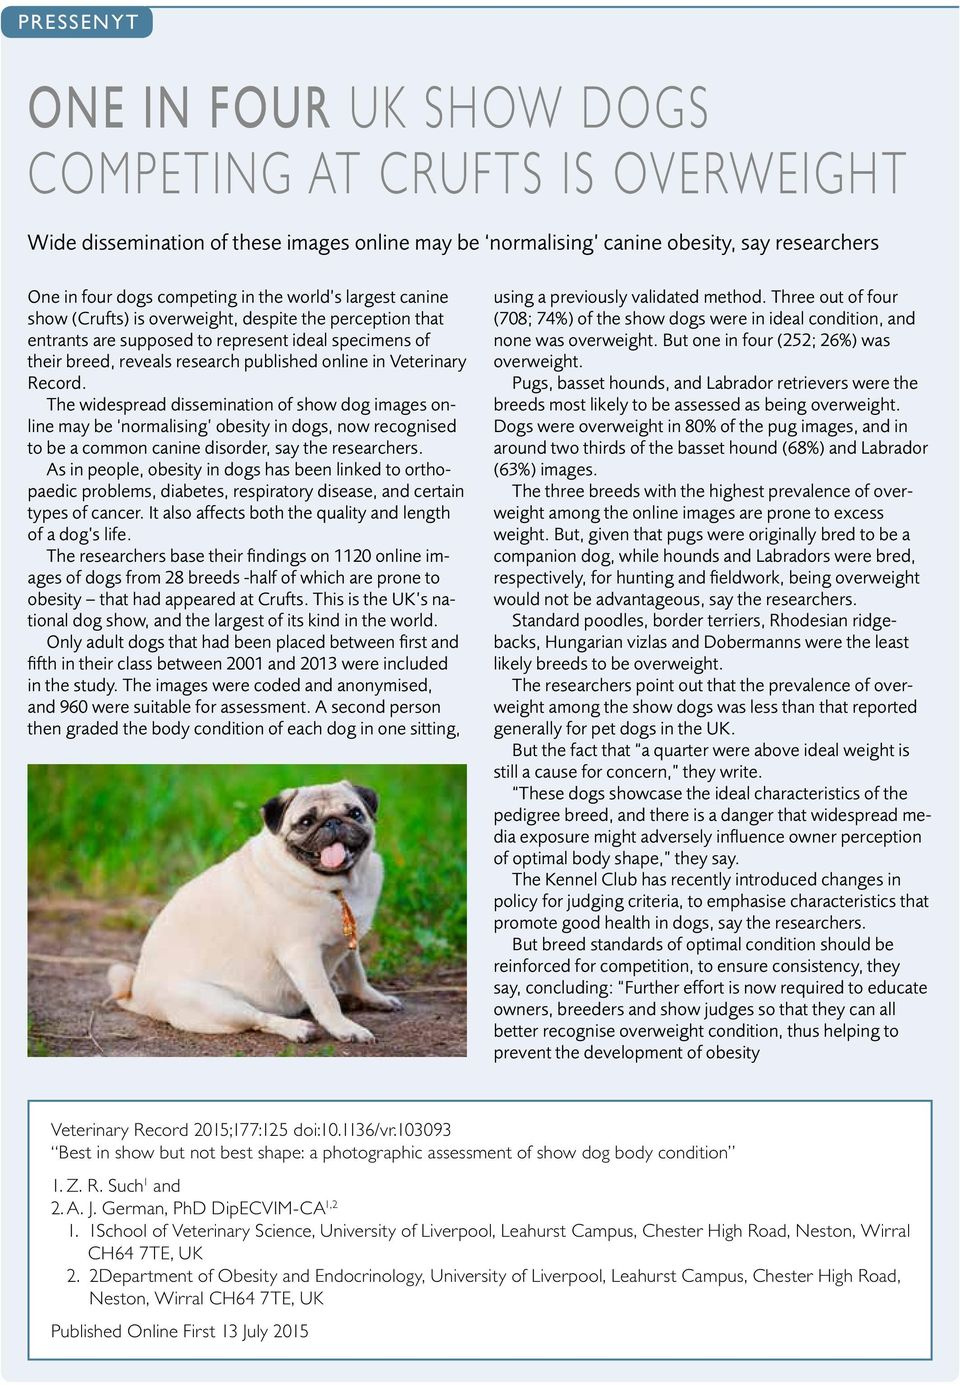 Record. The widespread dissemination of show dog images online may be normalising obesity in dogs, now recognised to be a common canine disorder, say the researchers.